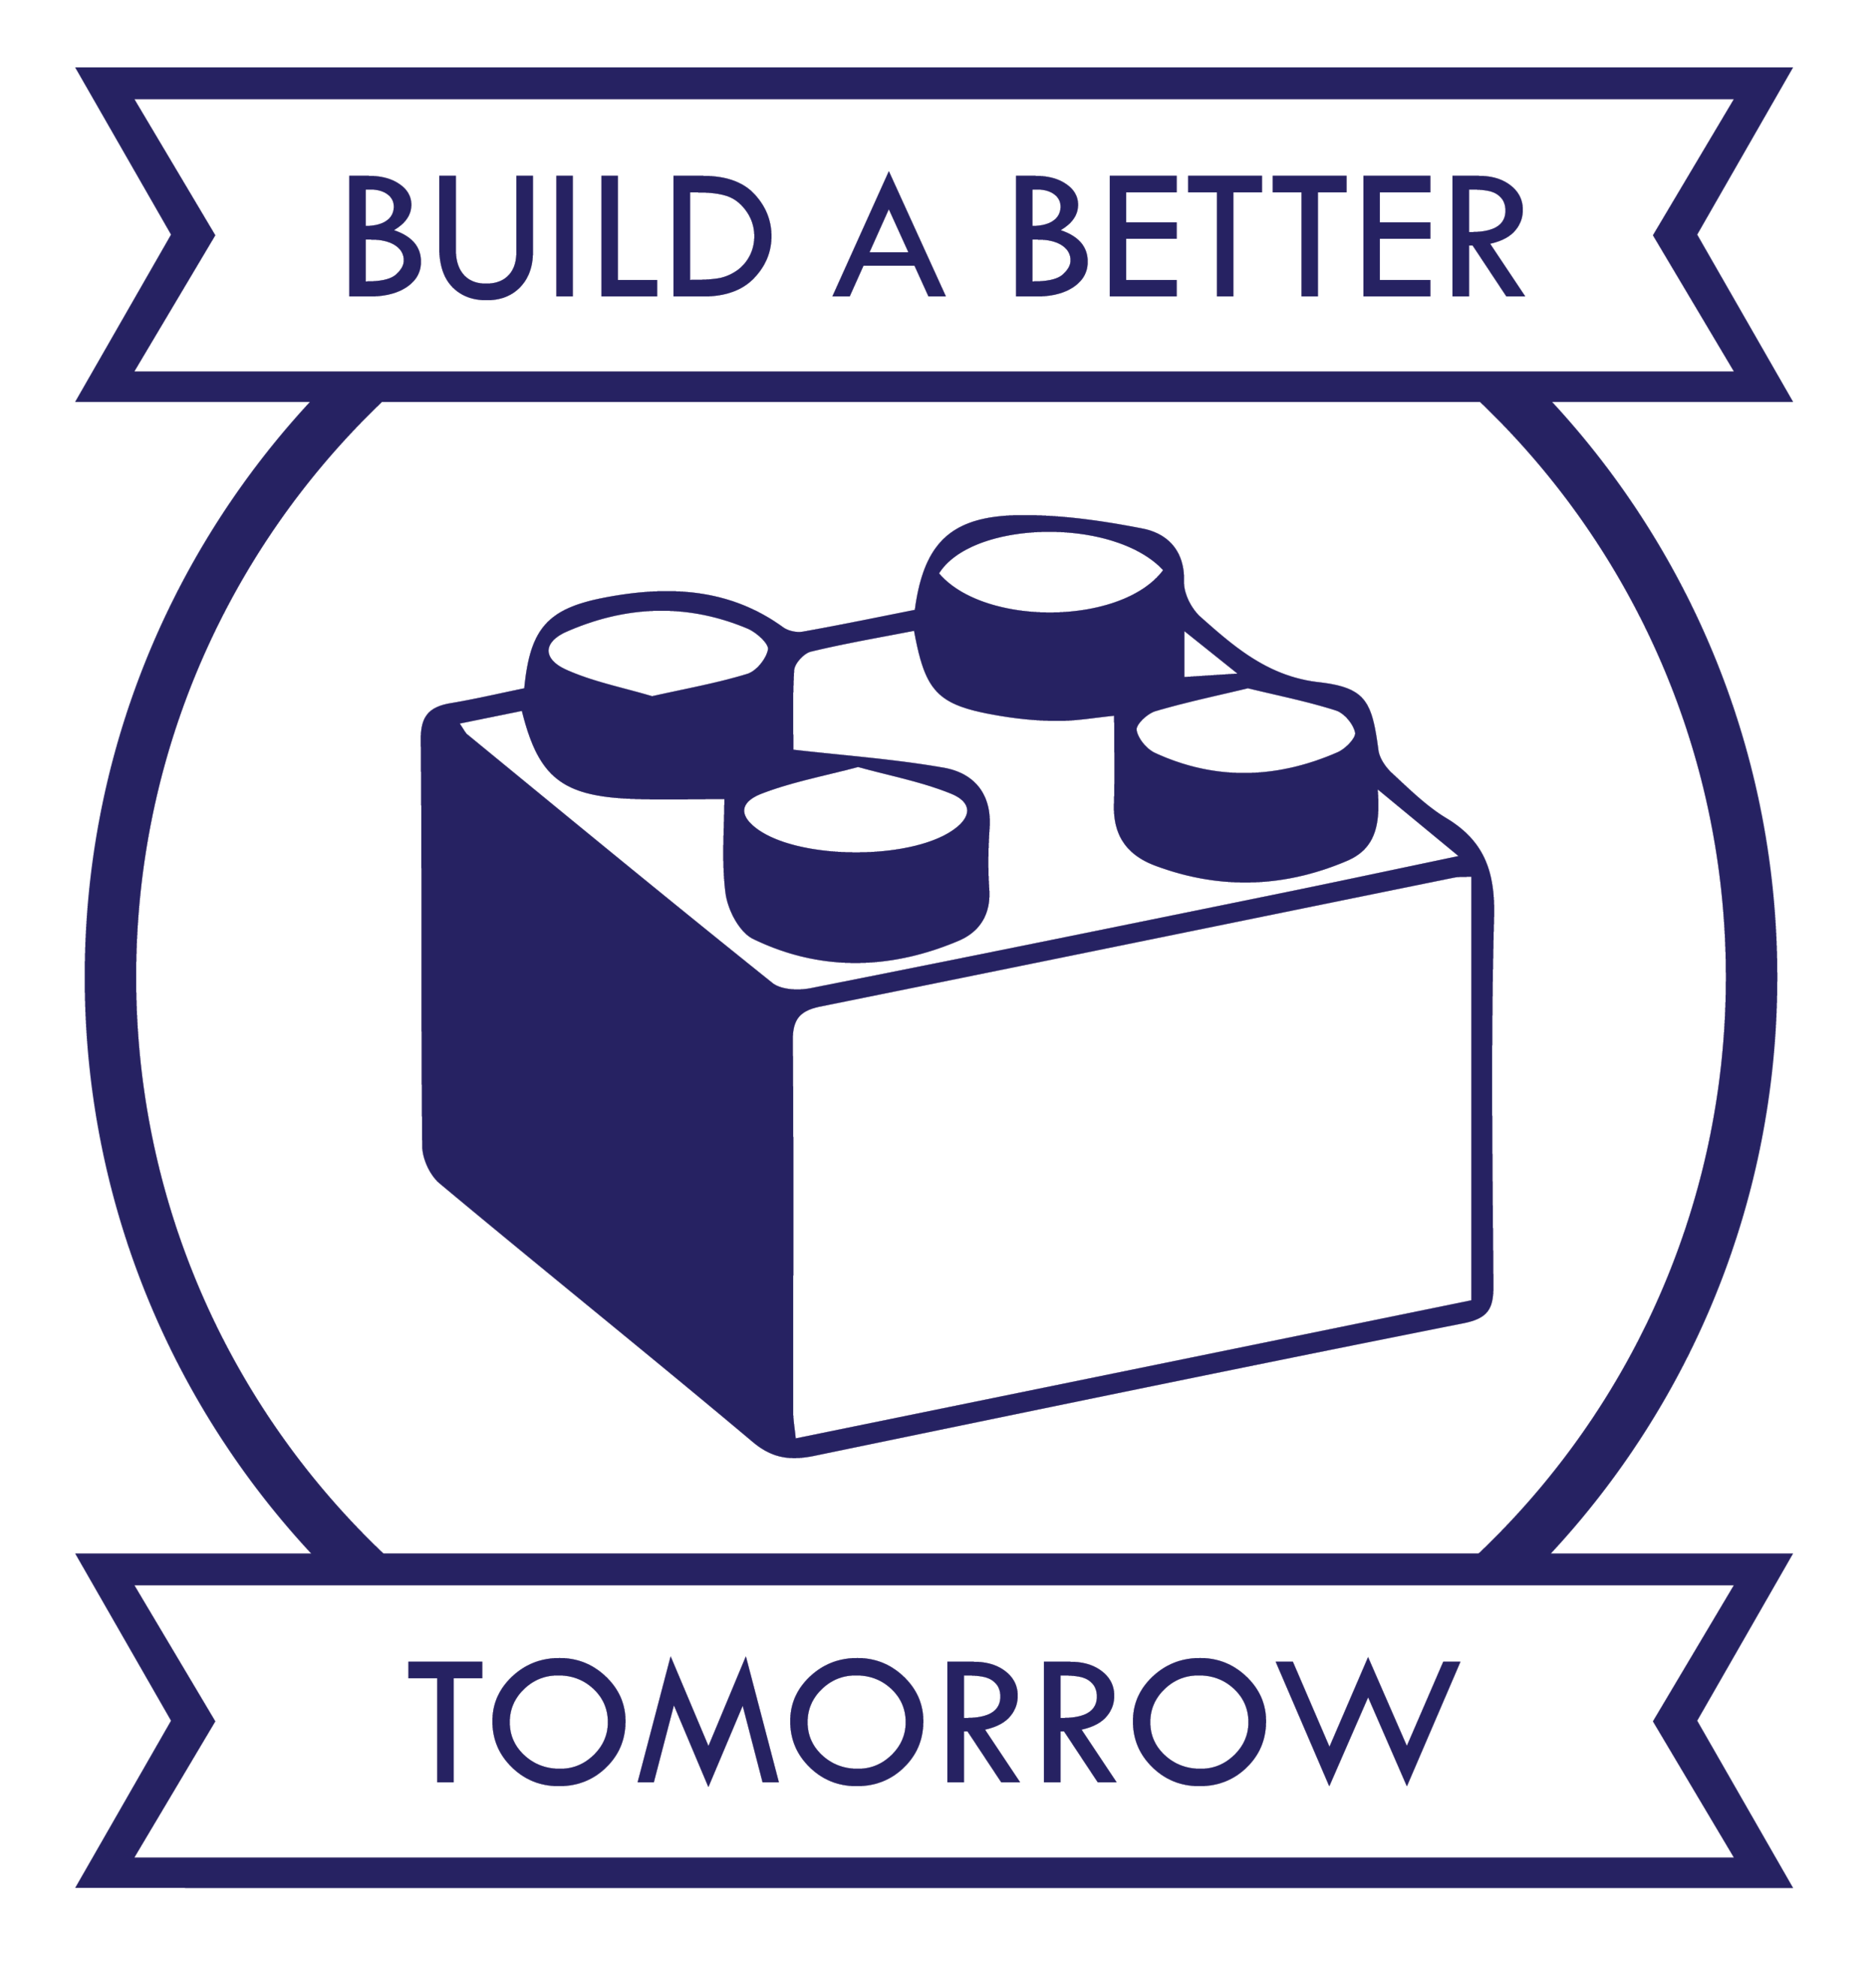 buildtomorrow.jpg